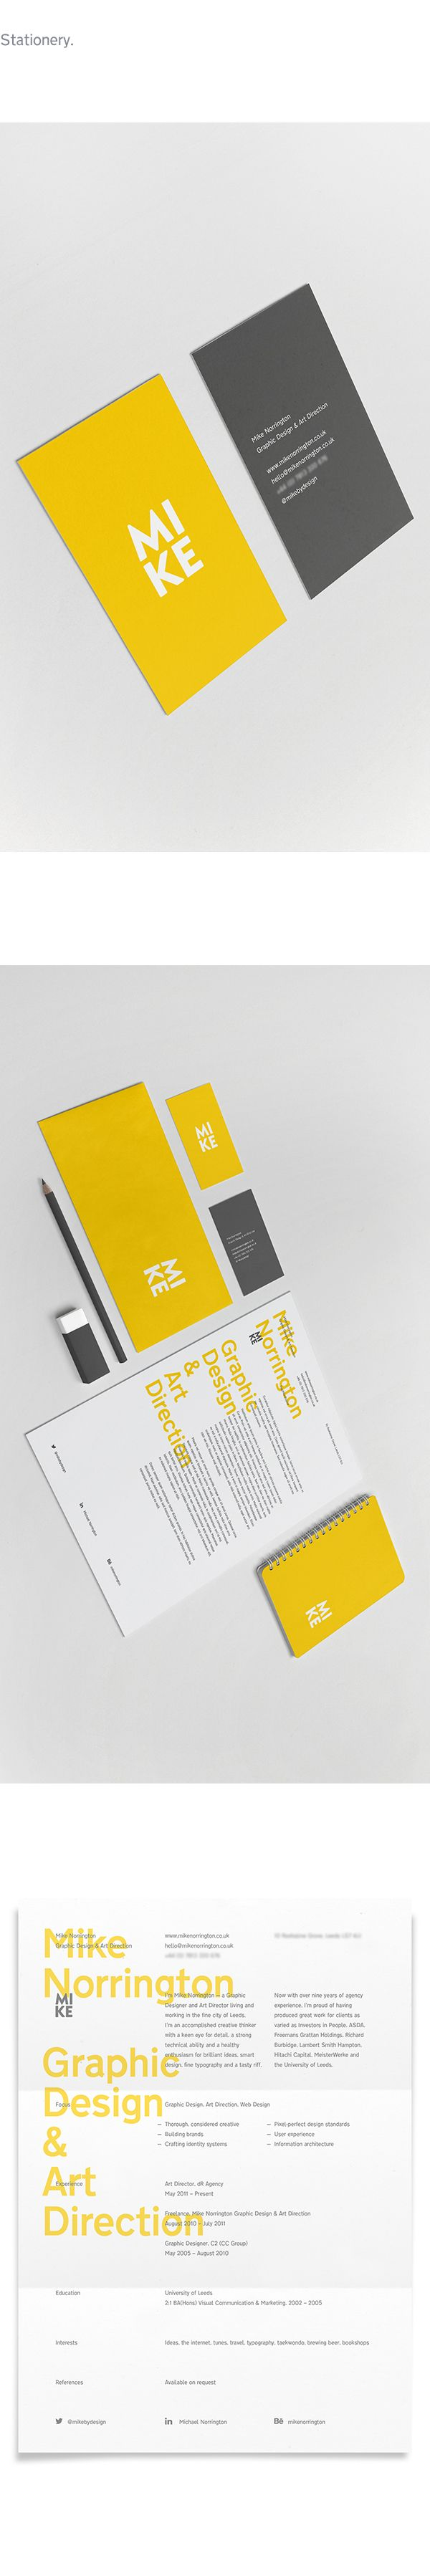 MIKE: a very personal identity on Branding Served